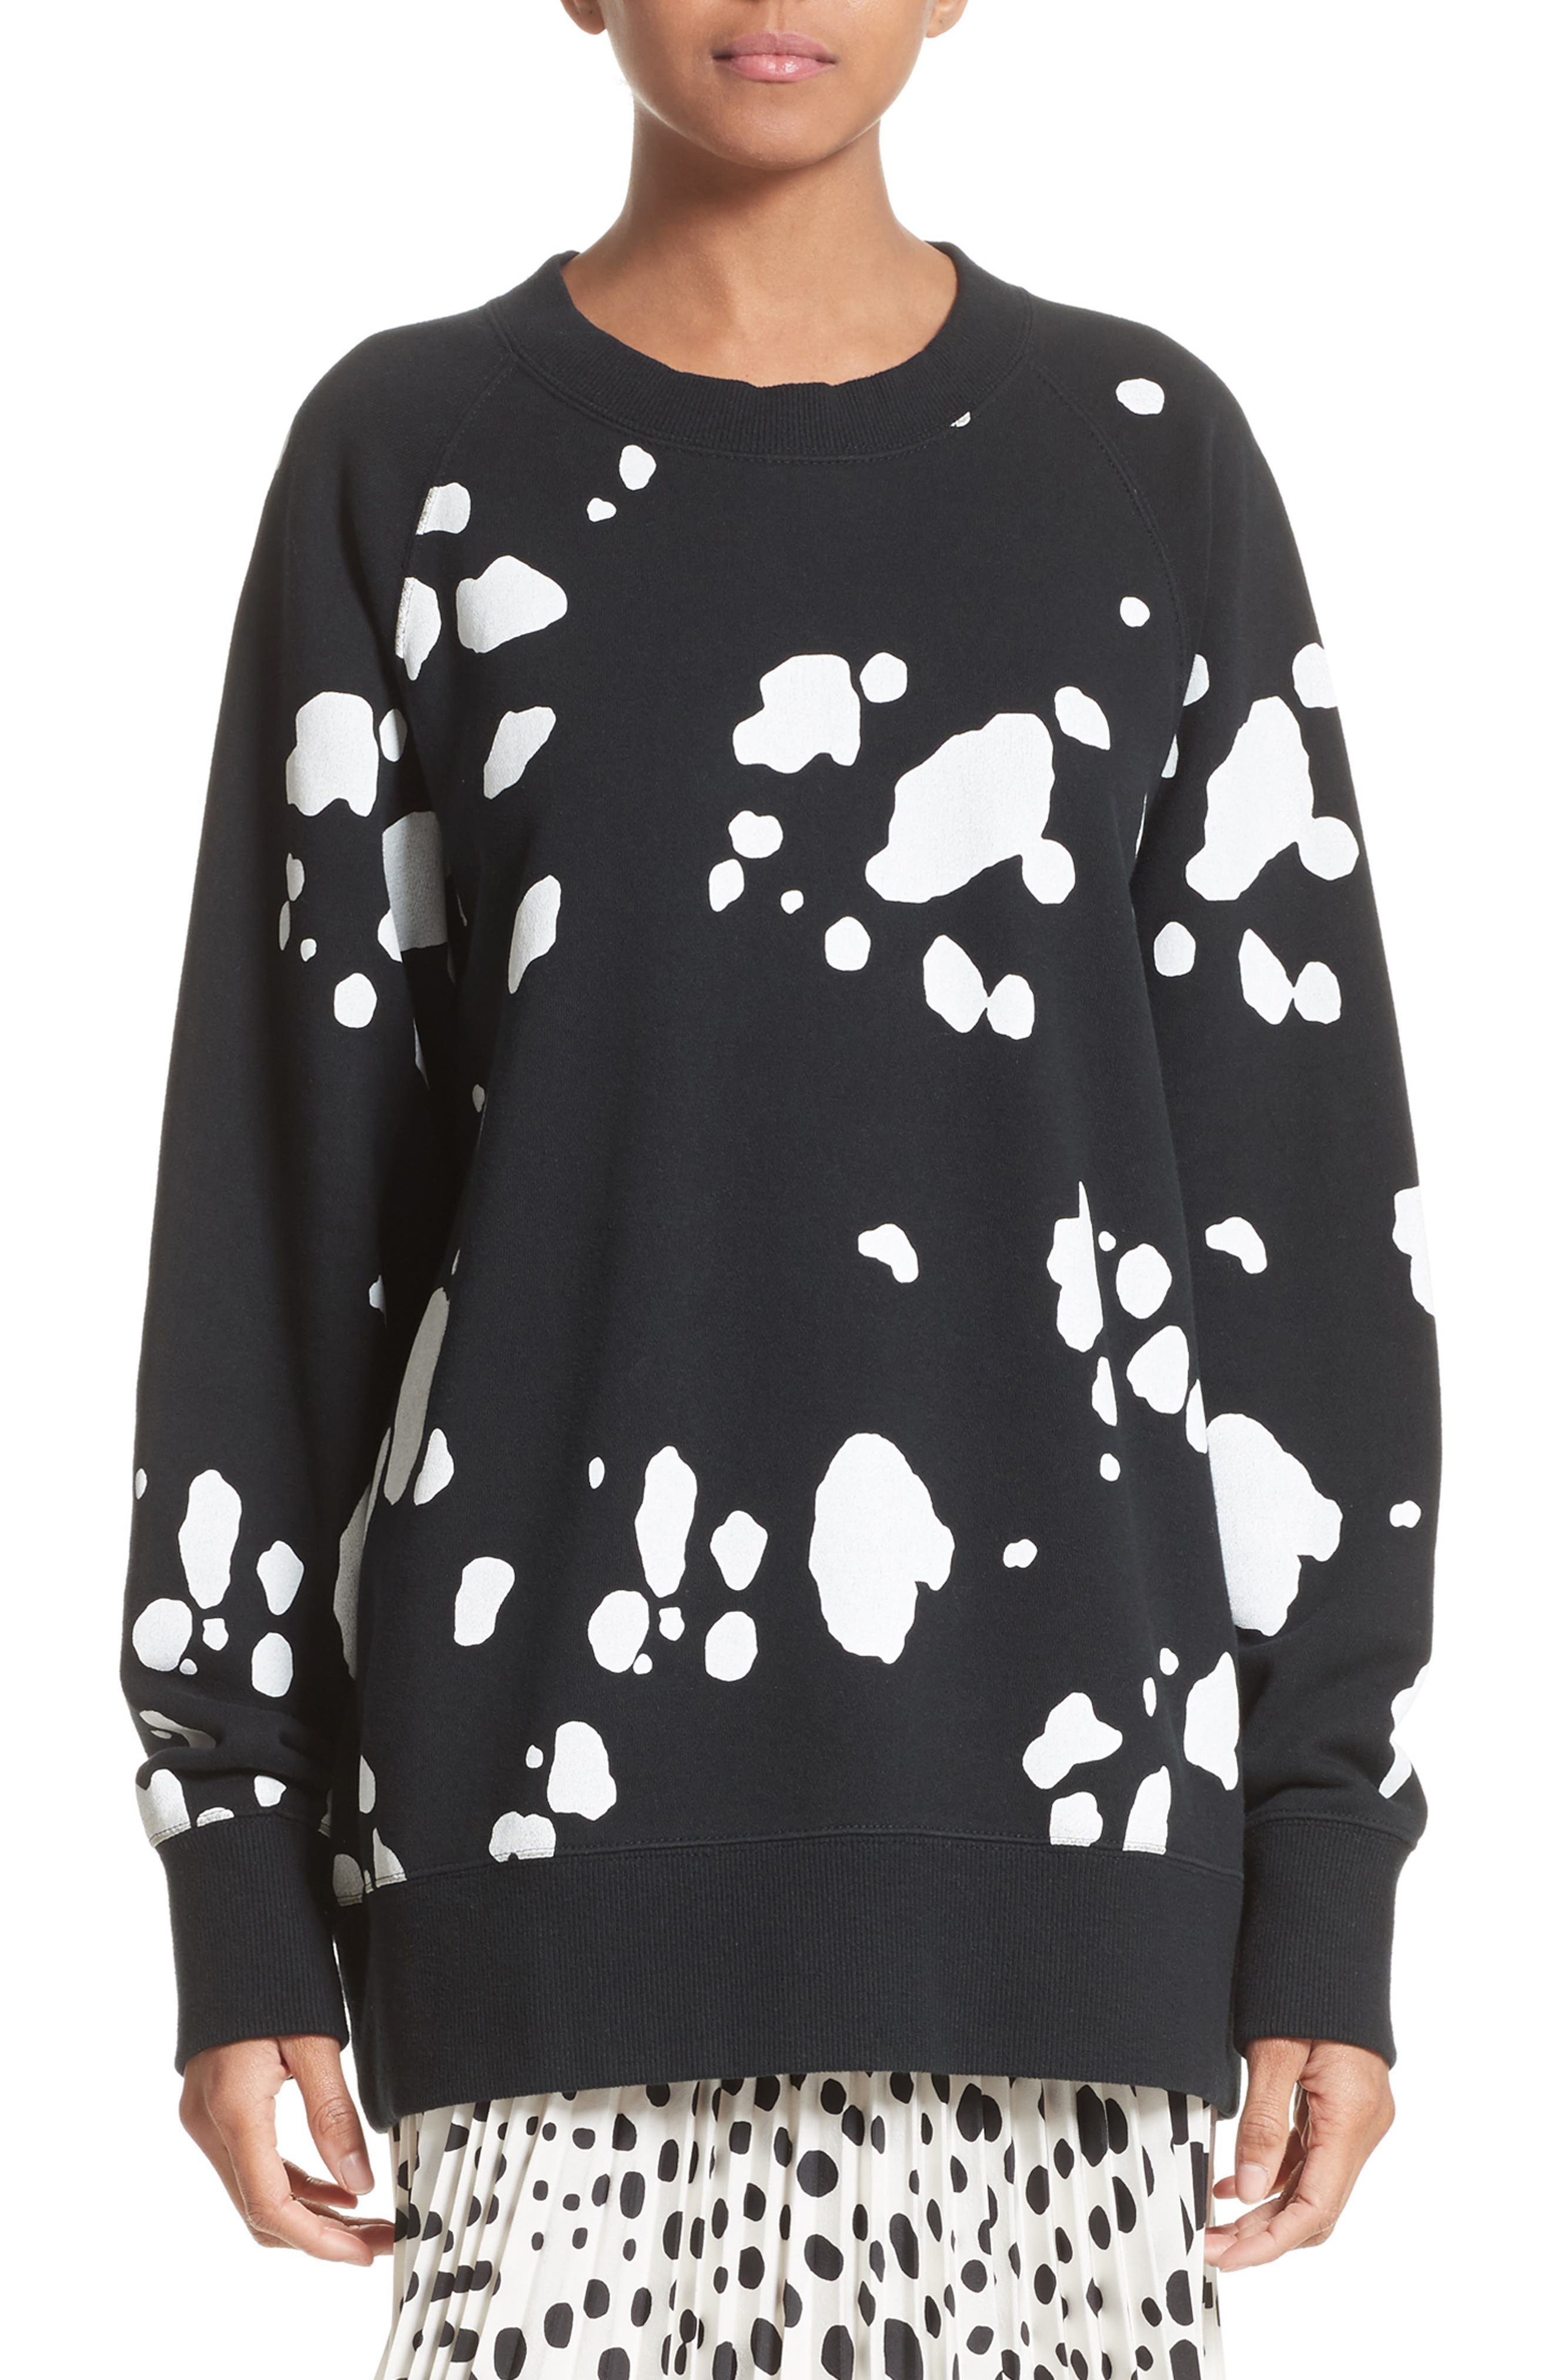 Dalmatian Print Sweatshirt,                             Main thumbnail 1, color,                             Black Multi